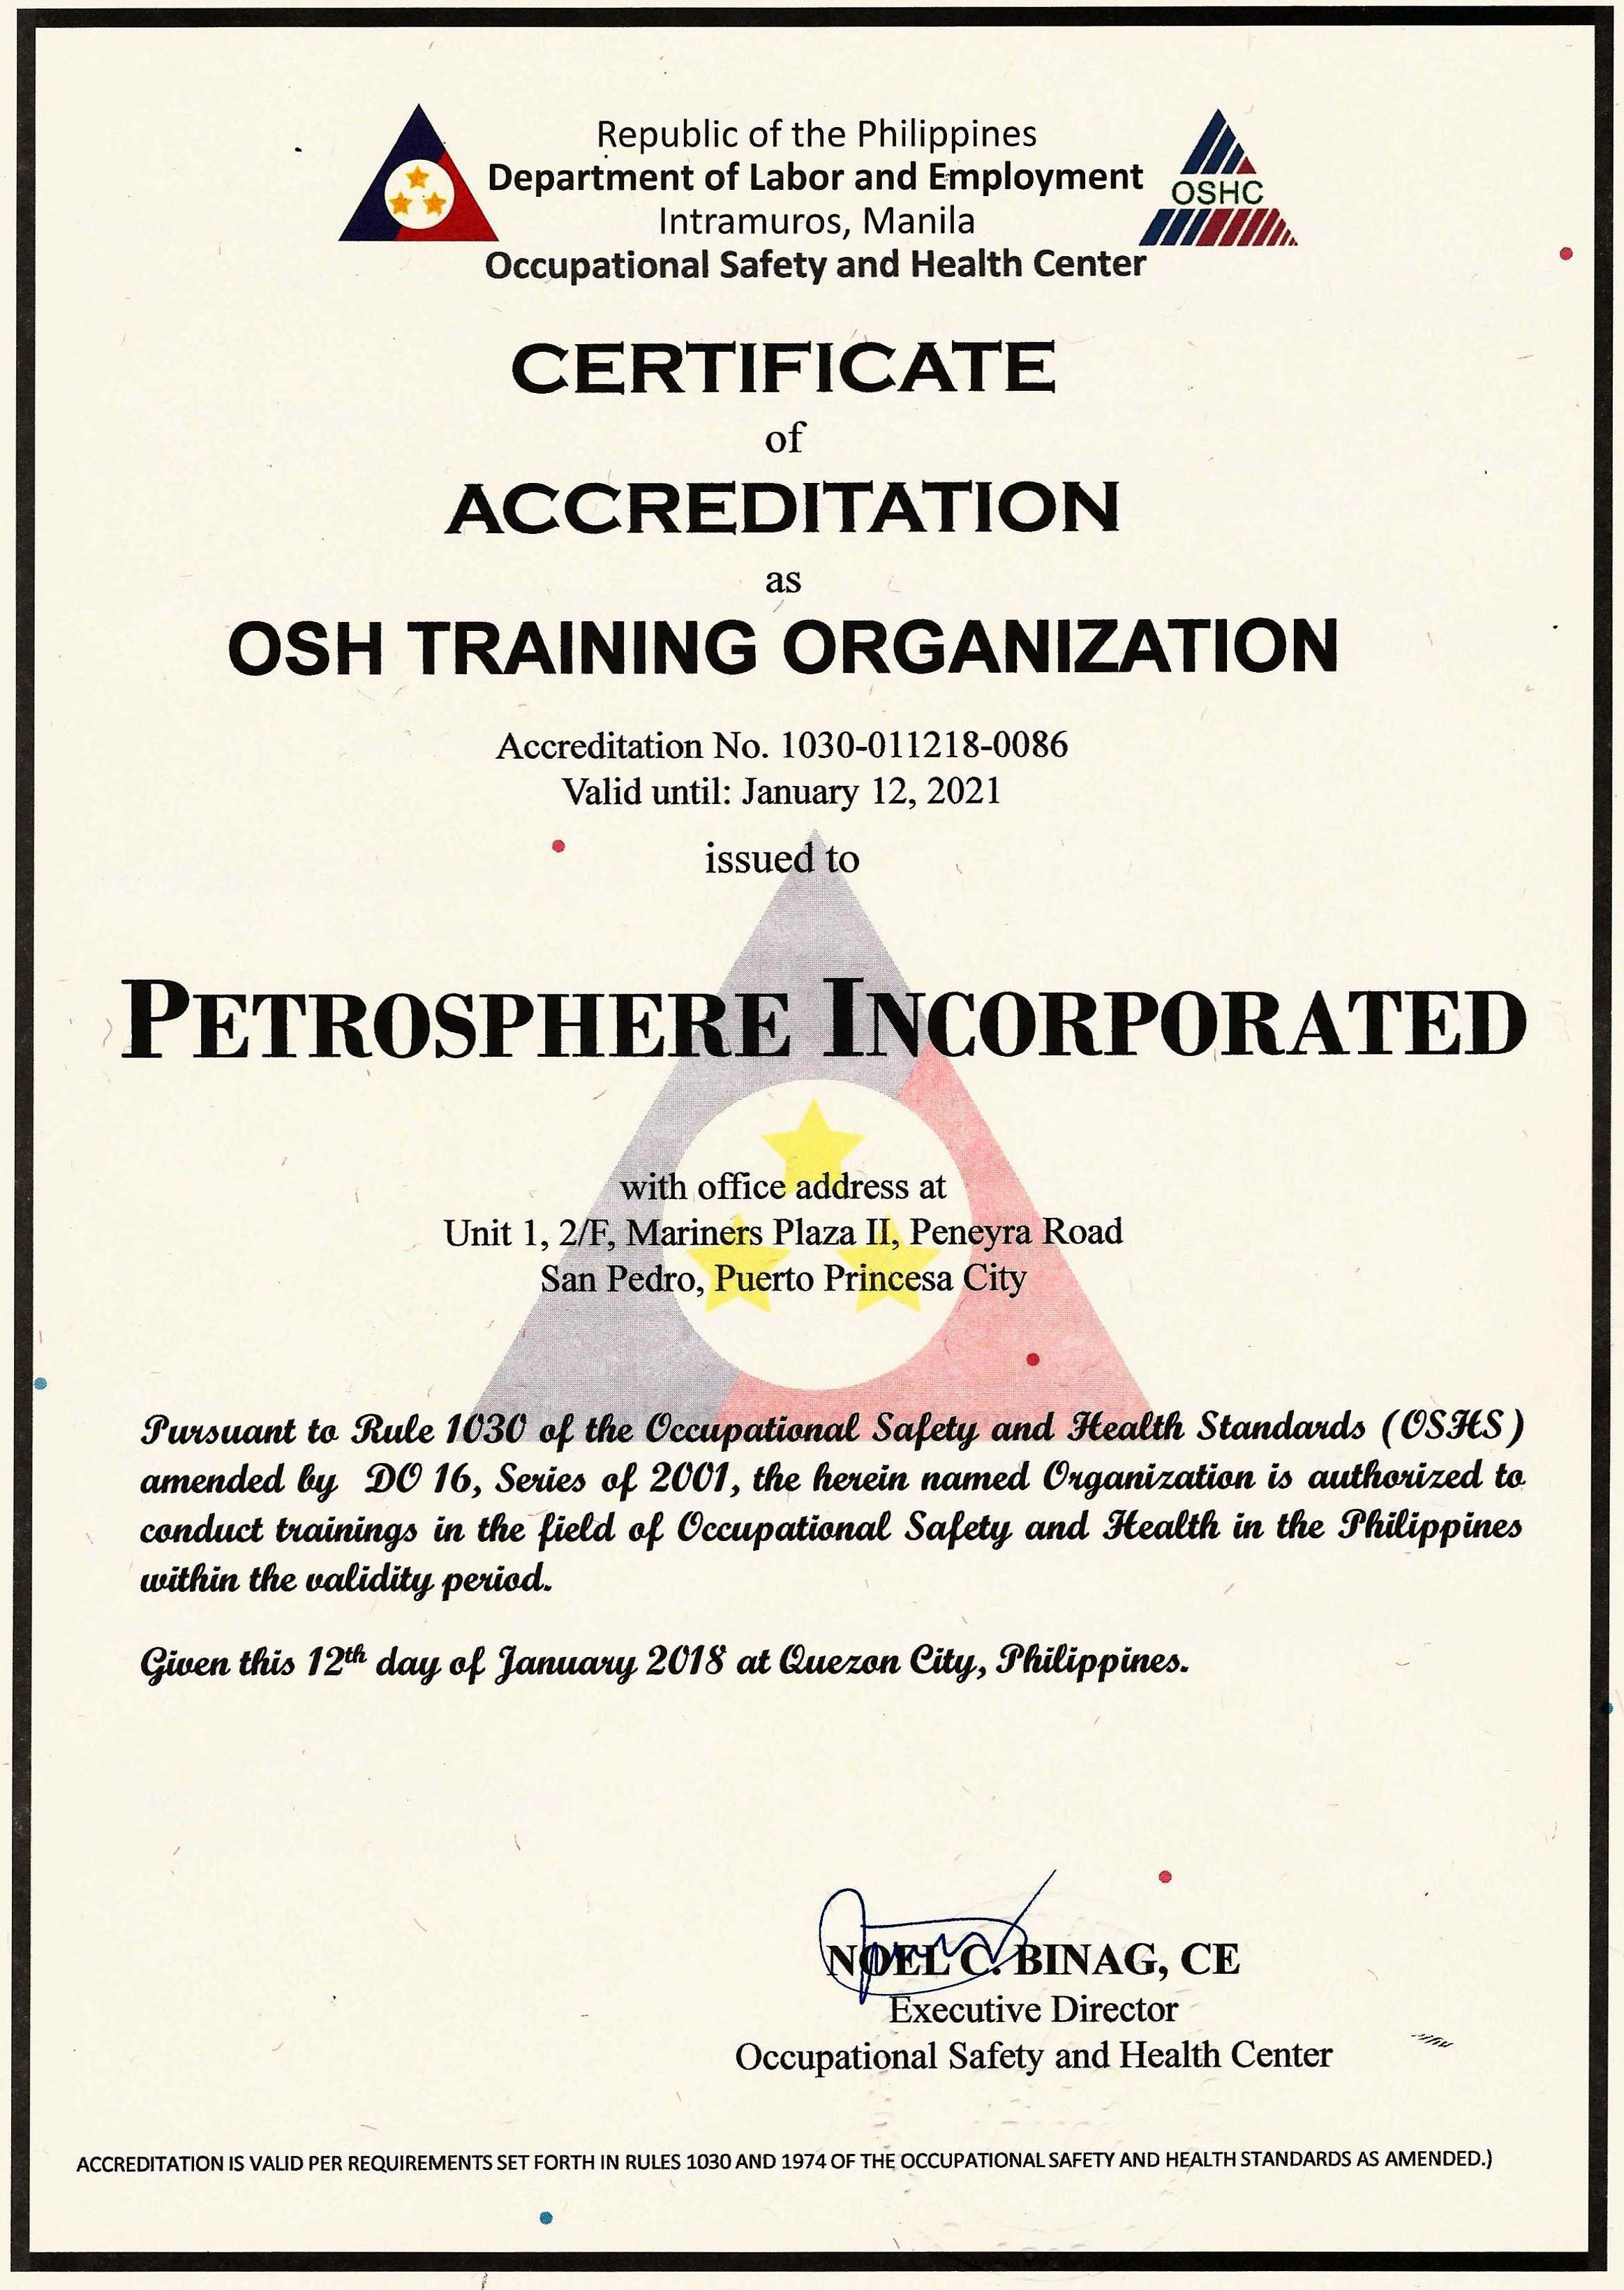 Pin By Petrosphere Inc On Bosh Cosh Philippines Occupational Health And Safety Occupational Safety Accreditation